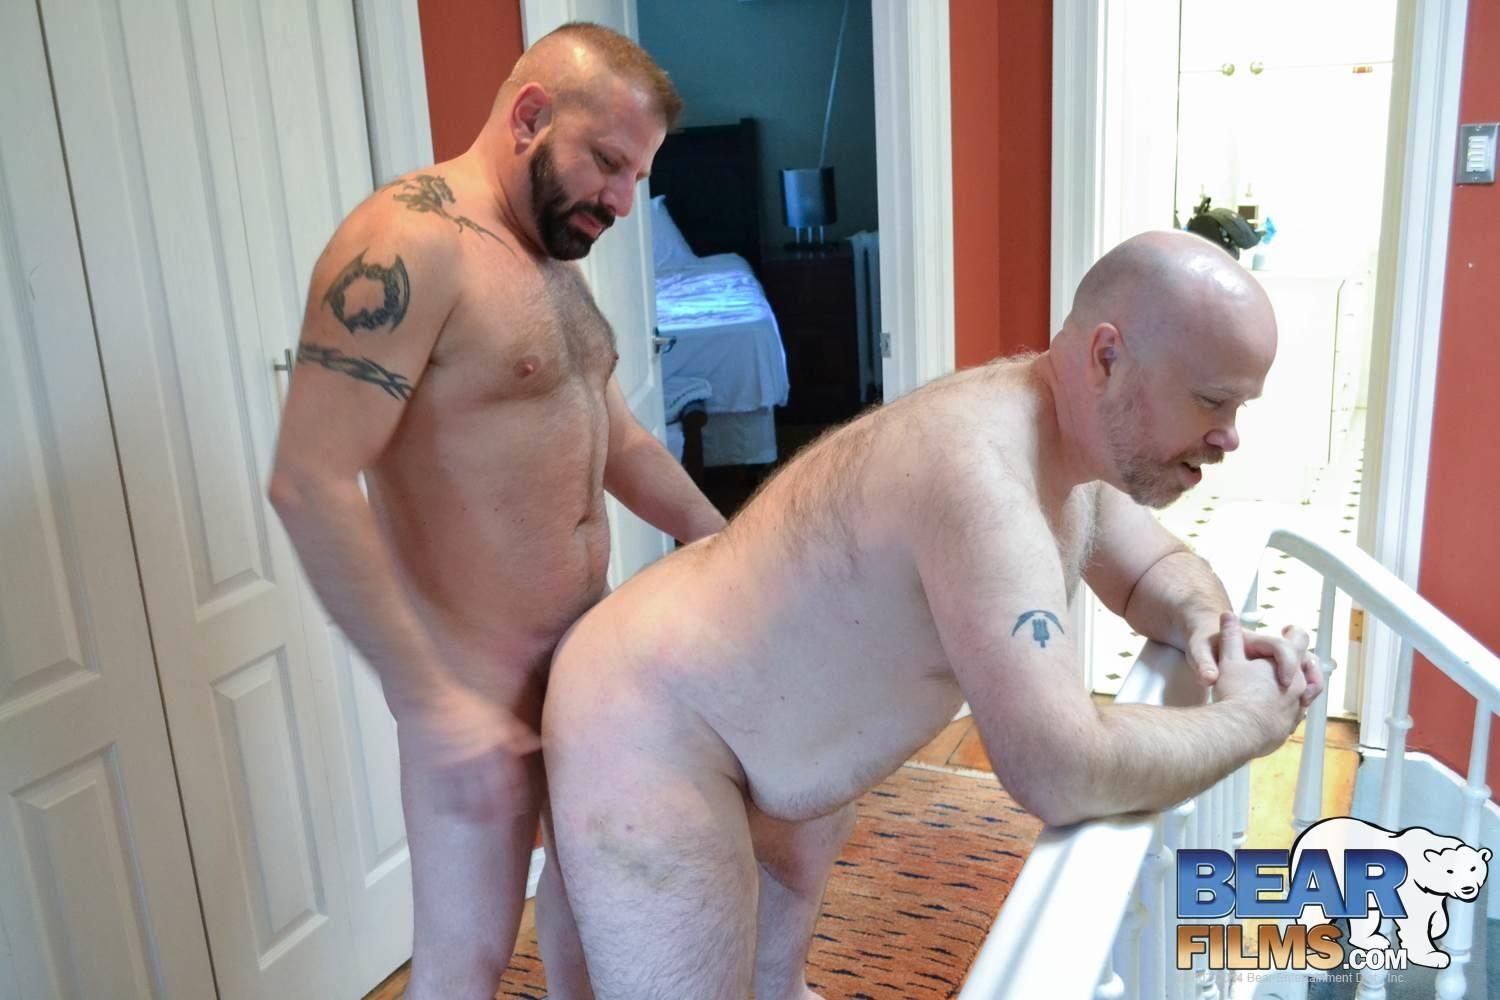 Bear Films Cooper Hill and Steve Brody Chubby Bears Fucking Amateur Gay Porn 04 Cooper Hill and Steve Brody: Chubby Hairy Bears Fucking